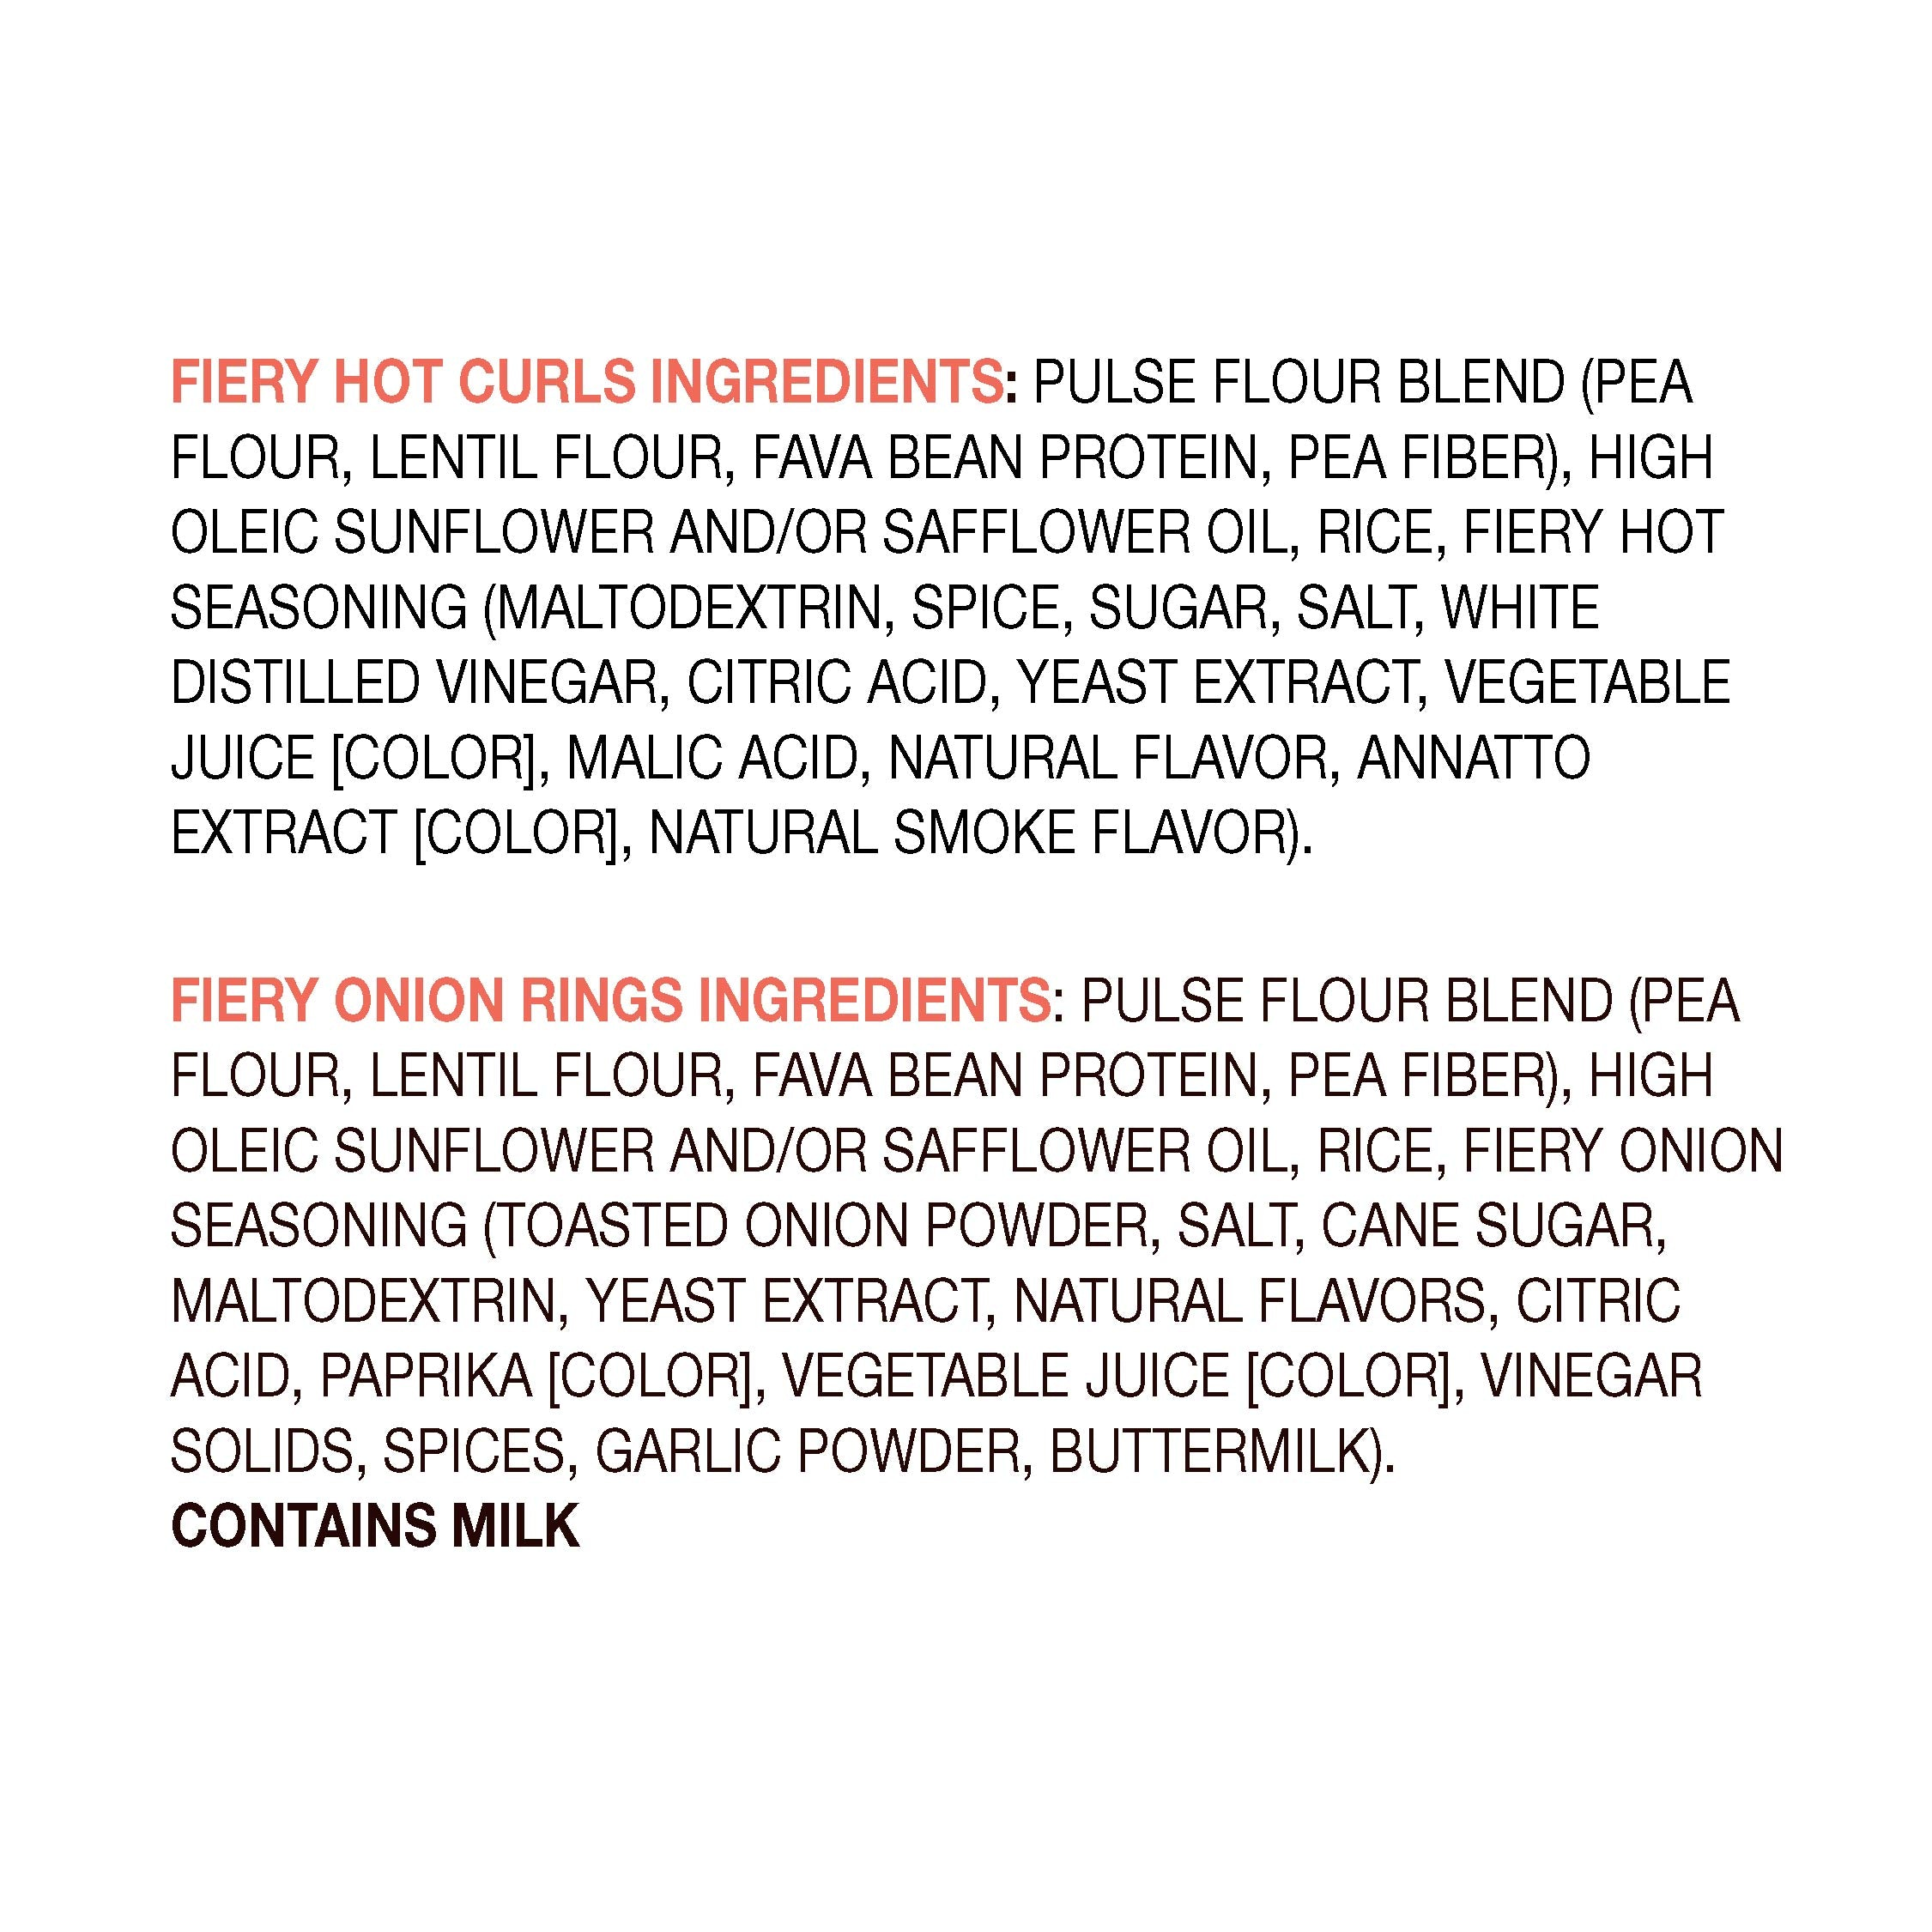 Peatos® fiery mix 15 single serve bags ingredients